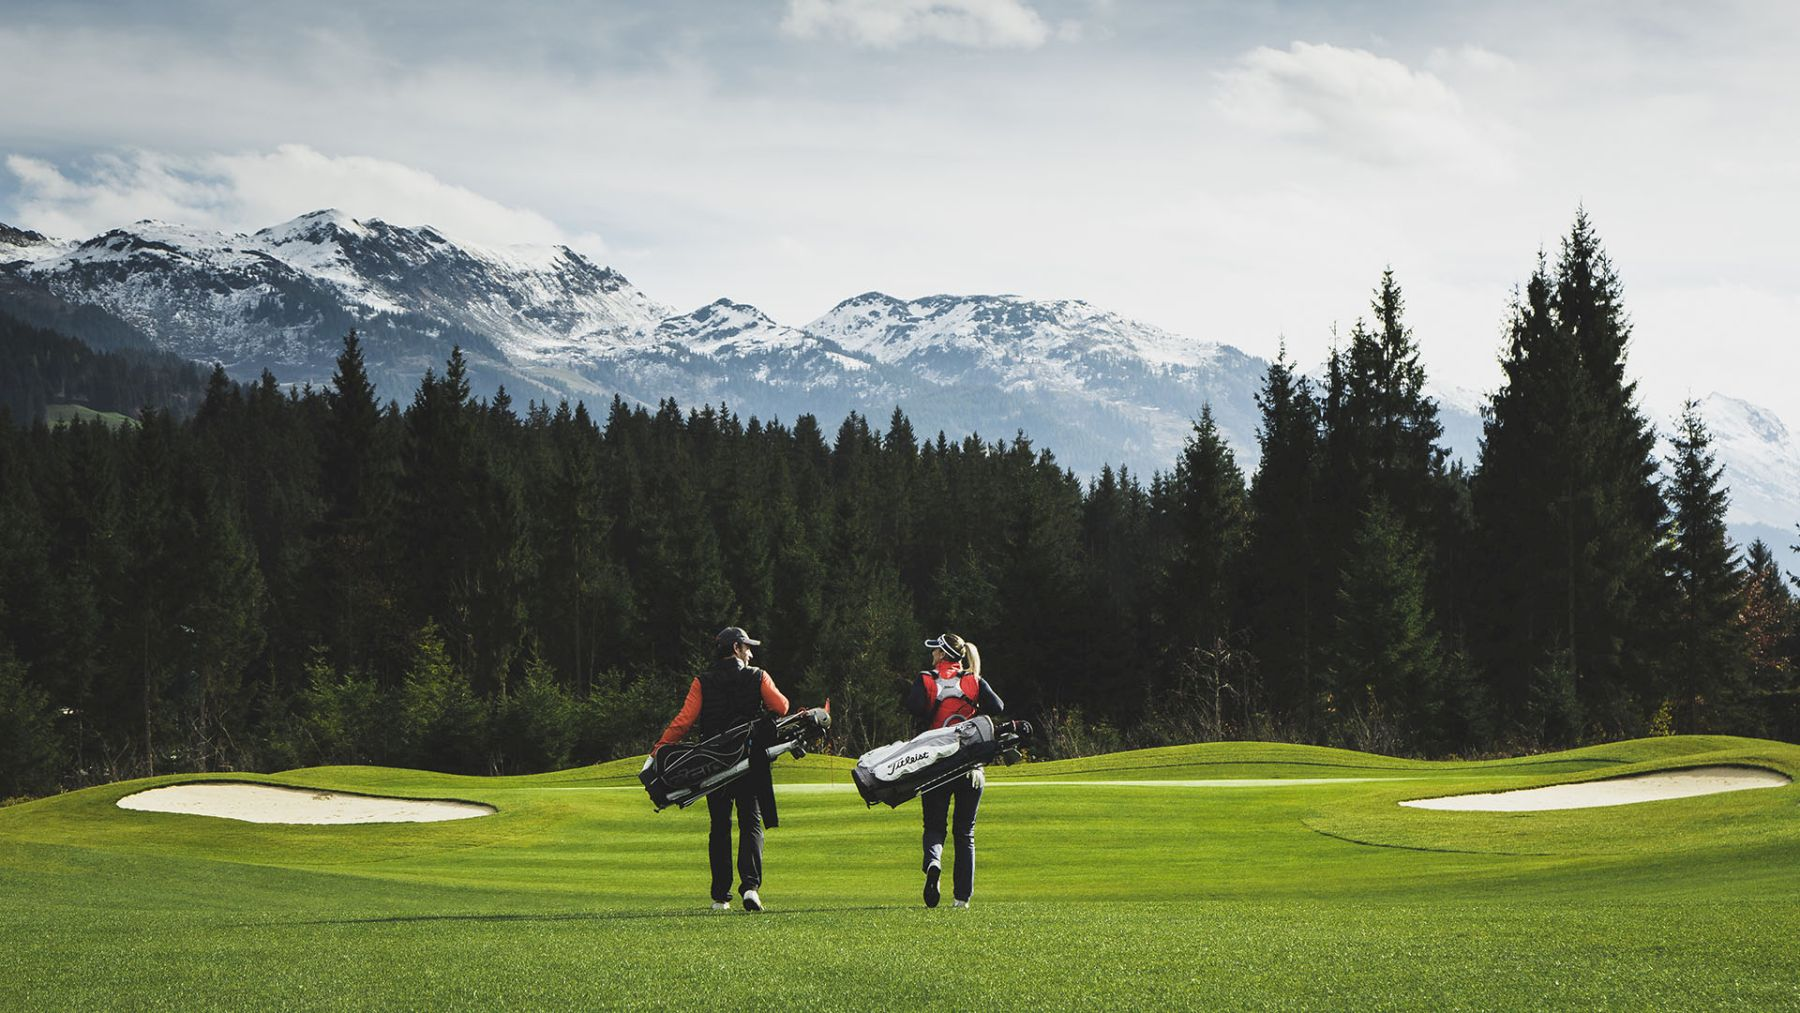 Golf Bad Gastein